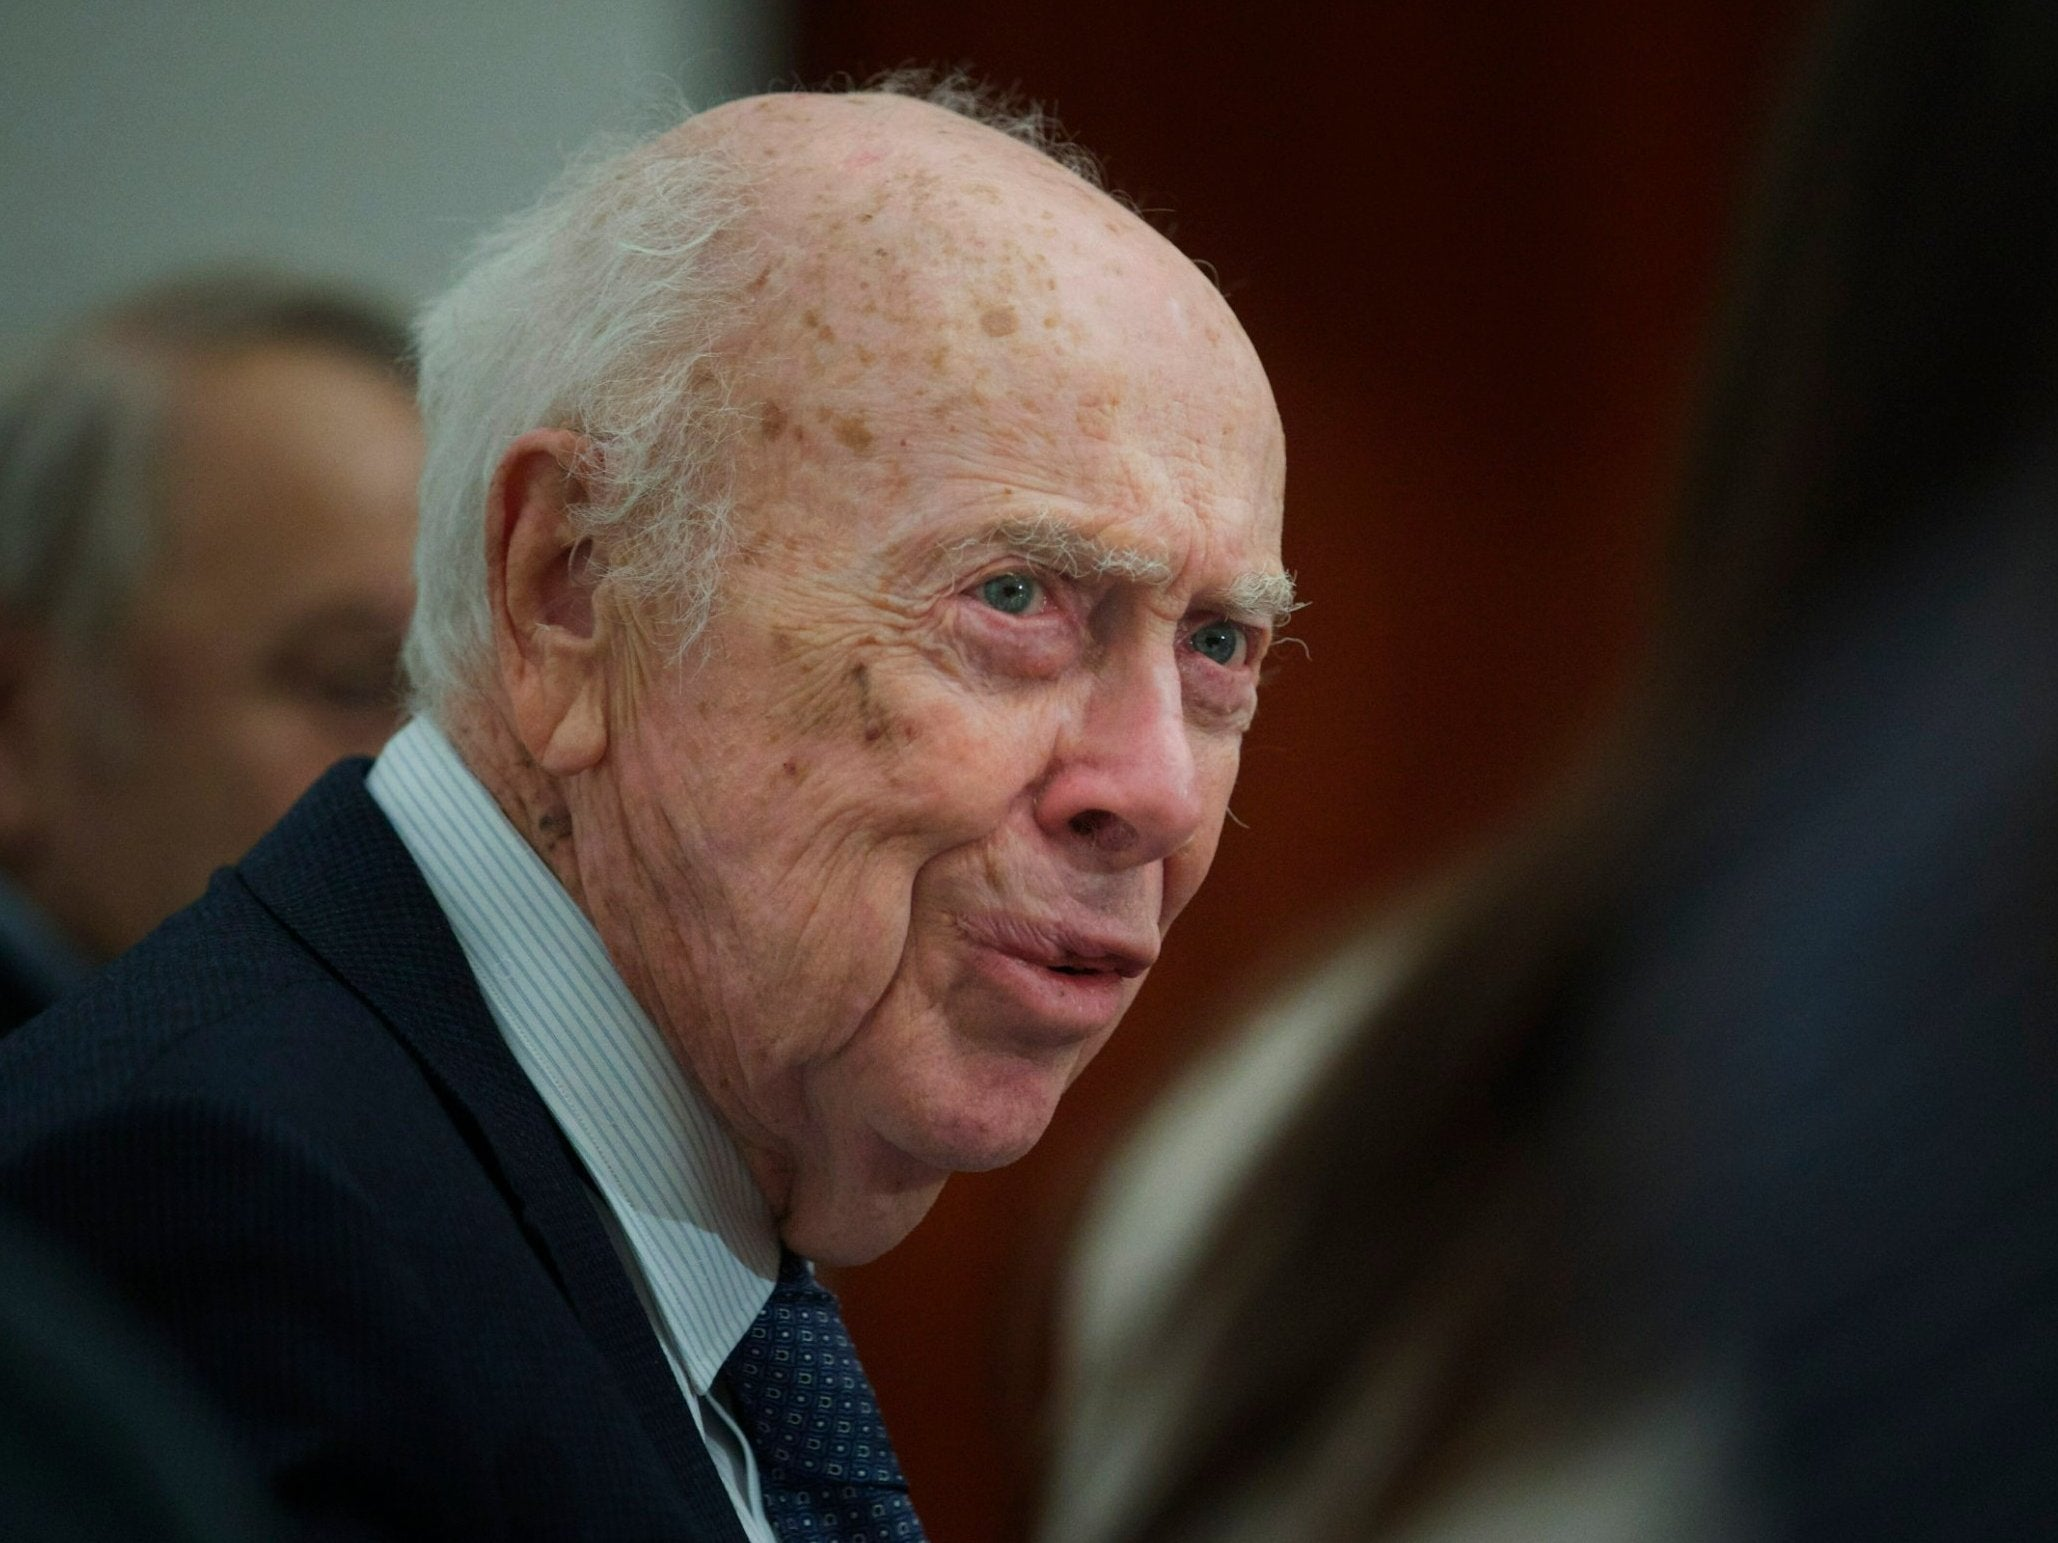 DNA pioneer James Watson has final honours stripped amid racism row